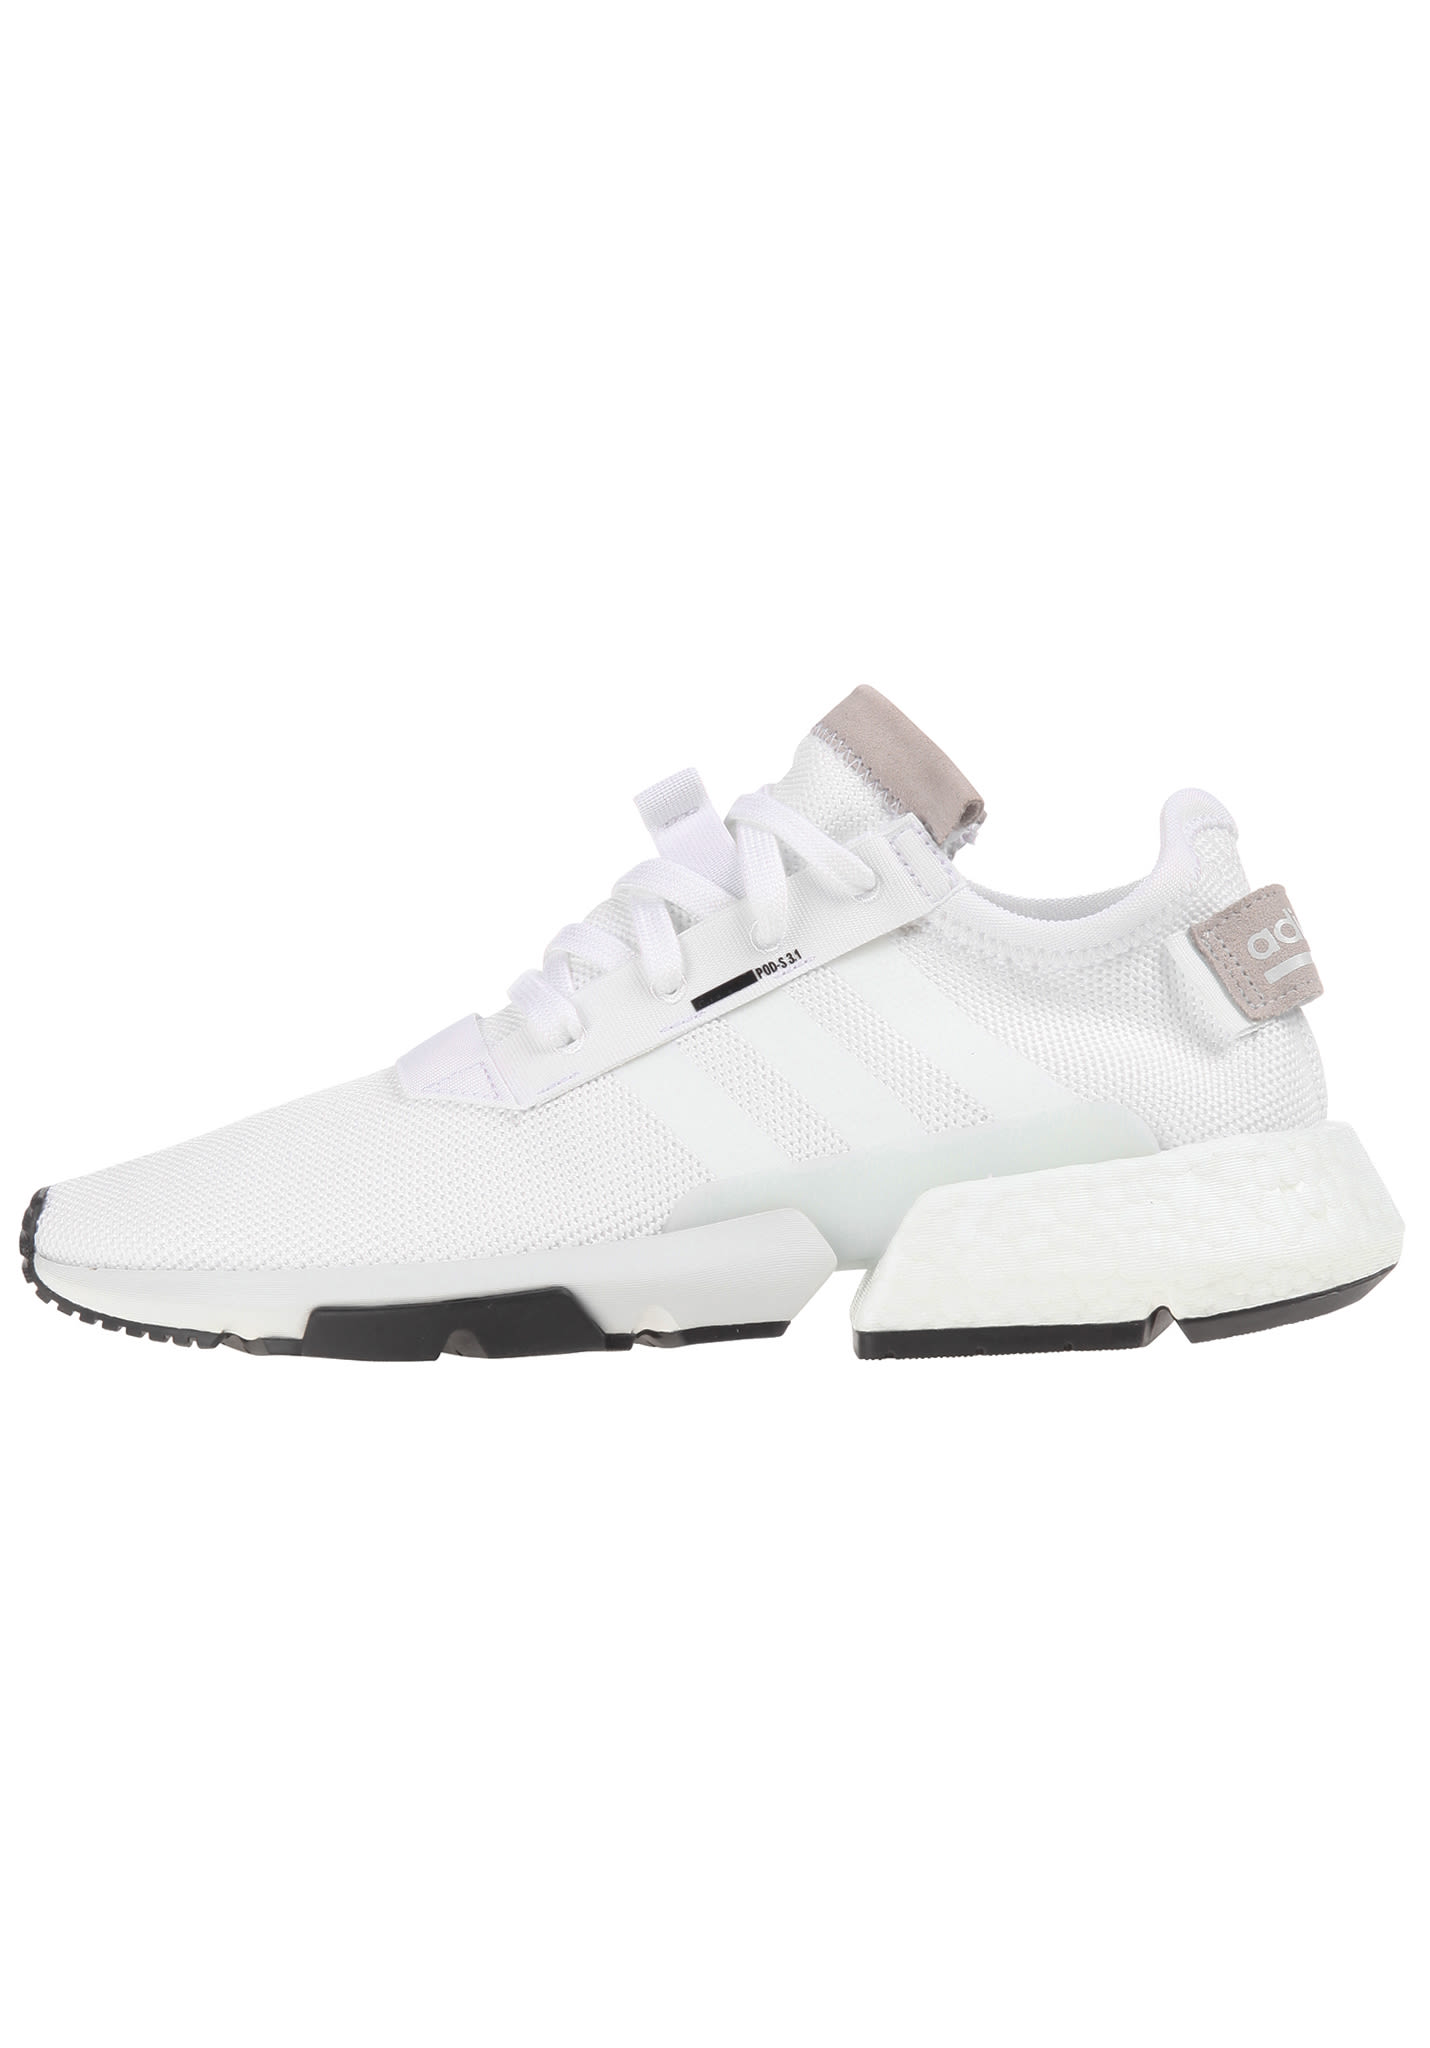 separation shoes 63c8d 74329 ADIDAS ORIGINALS POD-S3.1 - Sneaker per Uomo - Bianco - Planet Sports